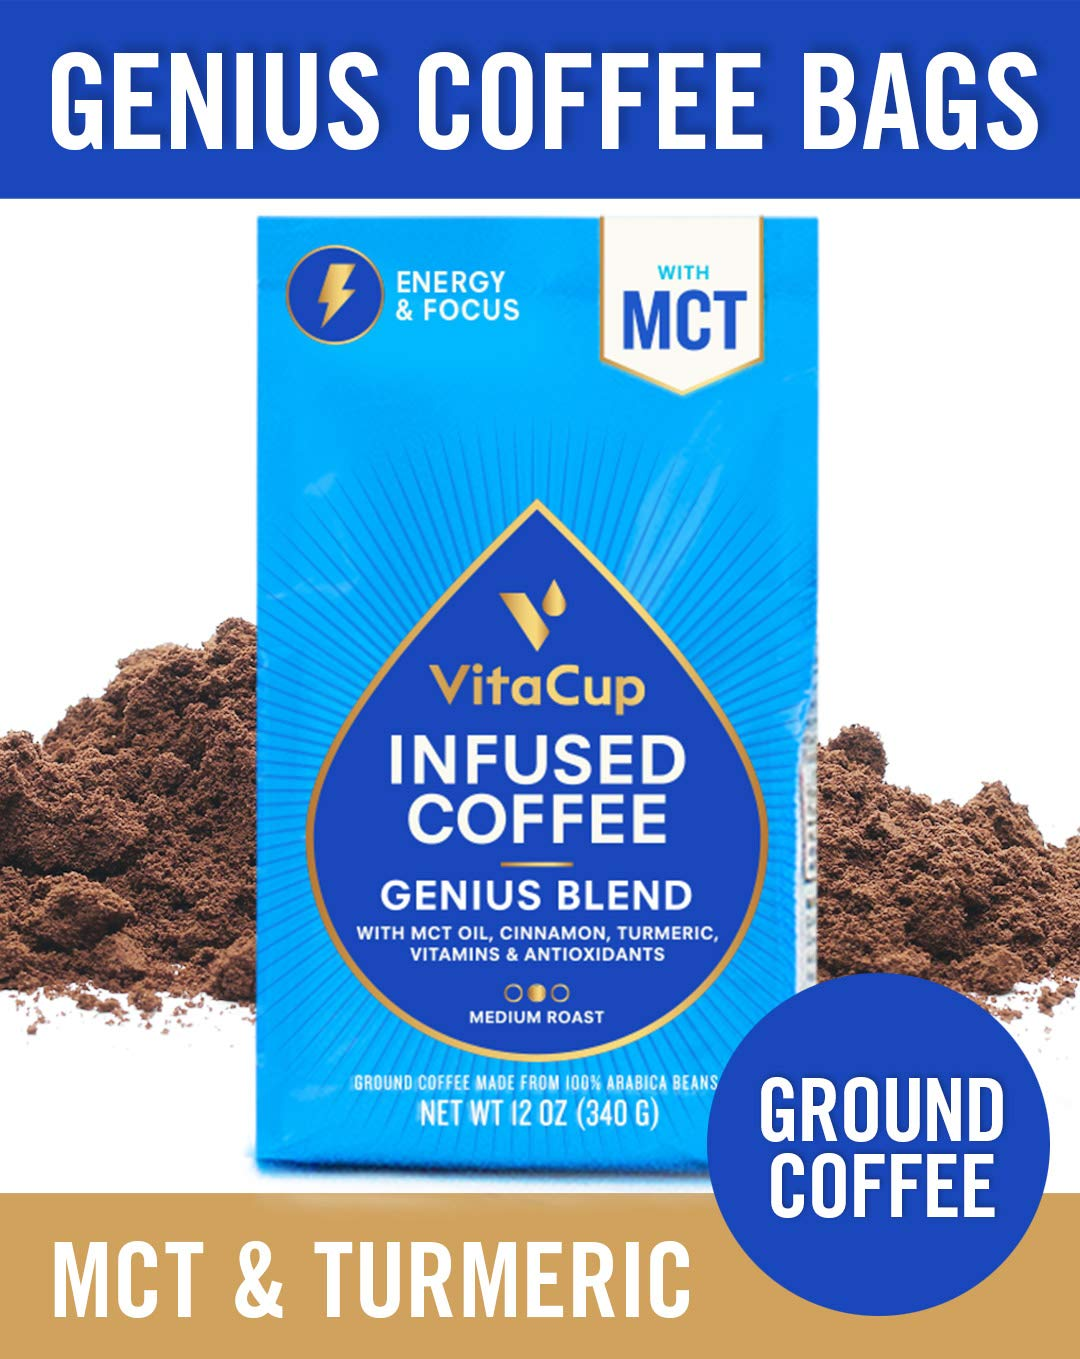 VitaCup Genius Blend Ground Coffee Bags 12oz. with MCT Oil, Turmeric, Vitamins, Cinnamon, Keto|Paleo|Whole30 Friendly, B12, B9, B6, B5, B1, D3, and Antioxidants for Coffee Brewers, Pots, French Press by VitaCup (Image #1)